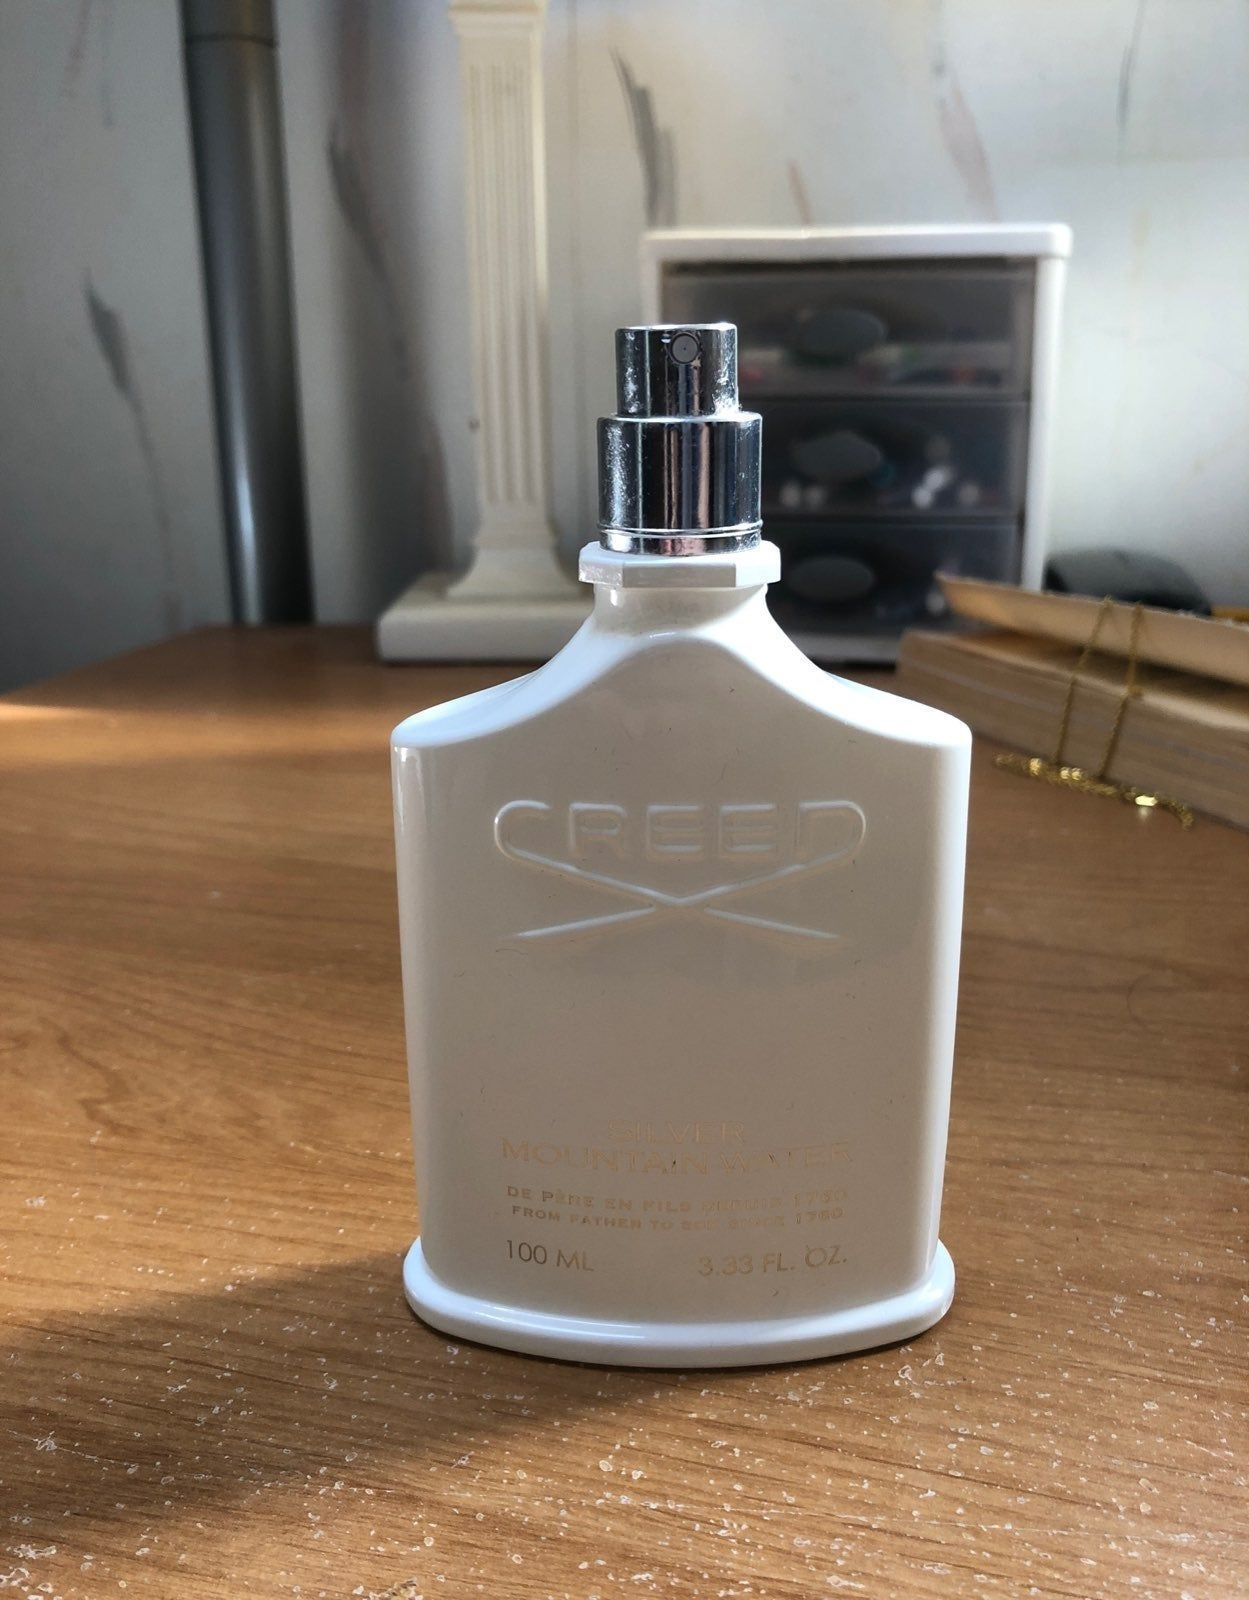 Creed Silver Mountain Water Cologne 100 Authentic Tester Bottle Barely Used 3 3oz Selling Fast Perfume Bottles Bottle Perfume